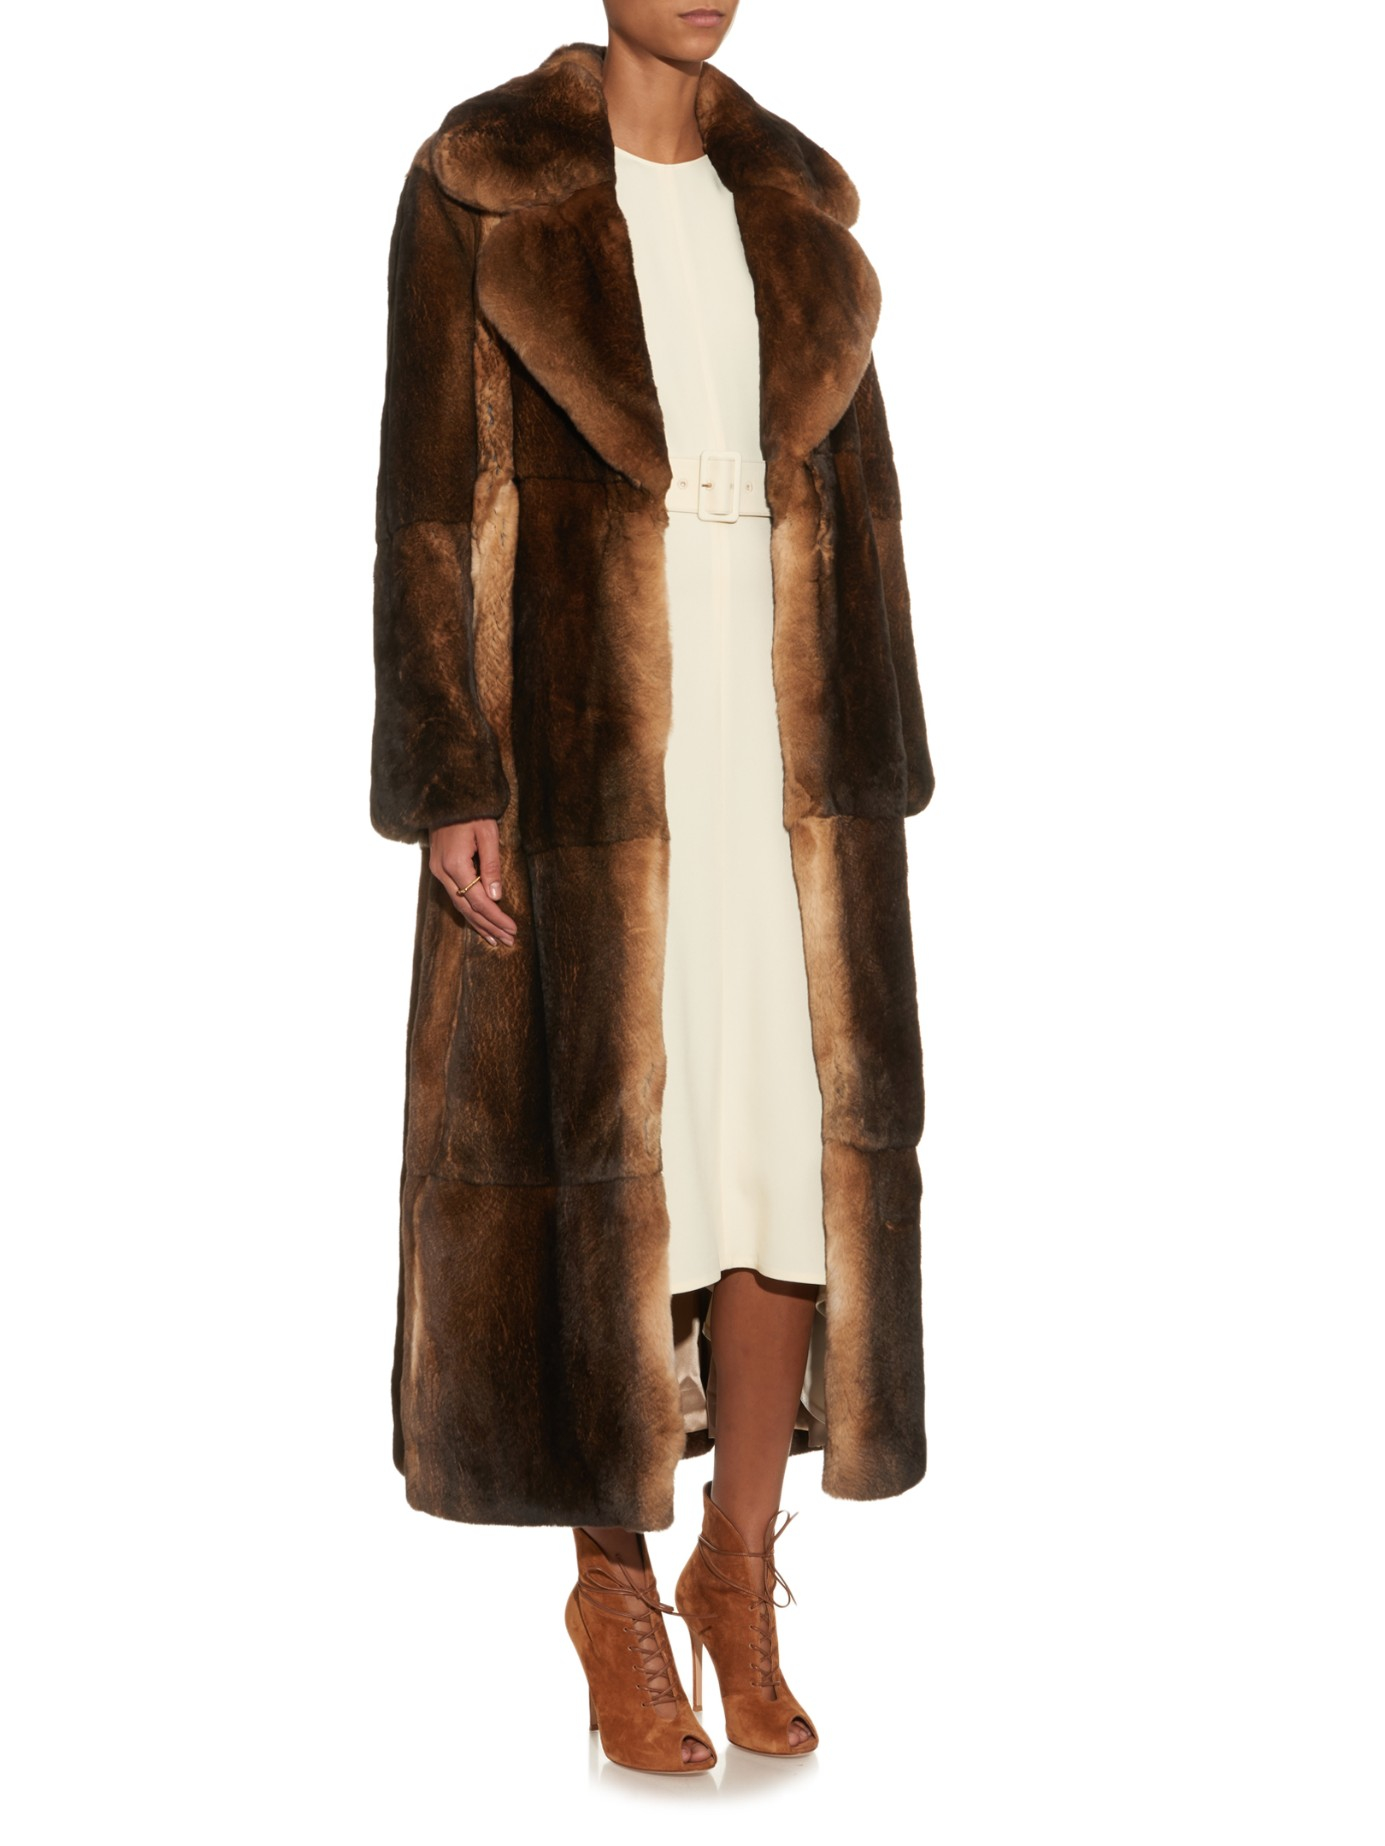 Adam lippes Long Rabbit-fur Coat in Brown | Lyst